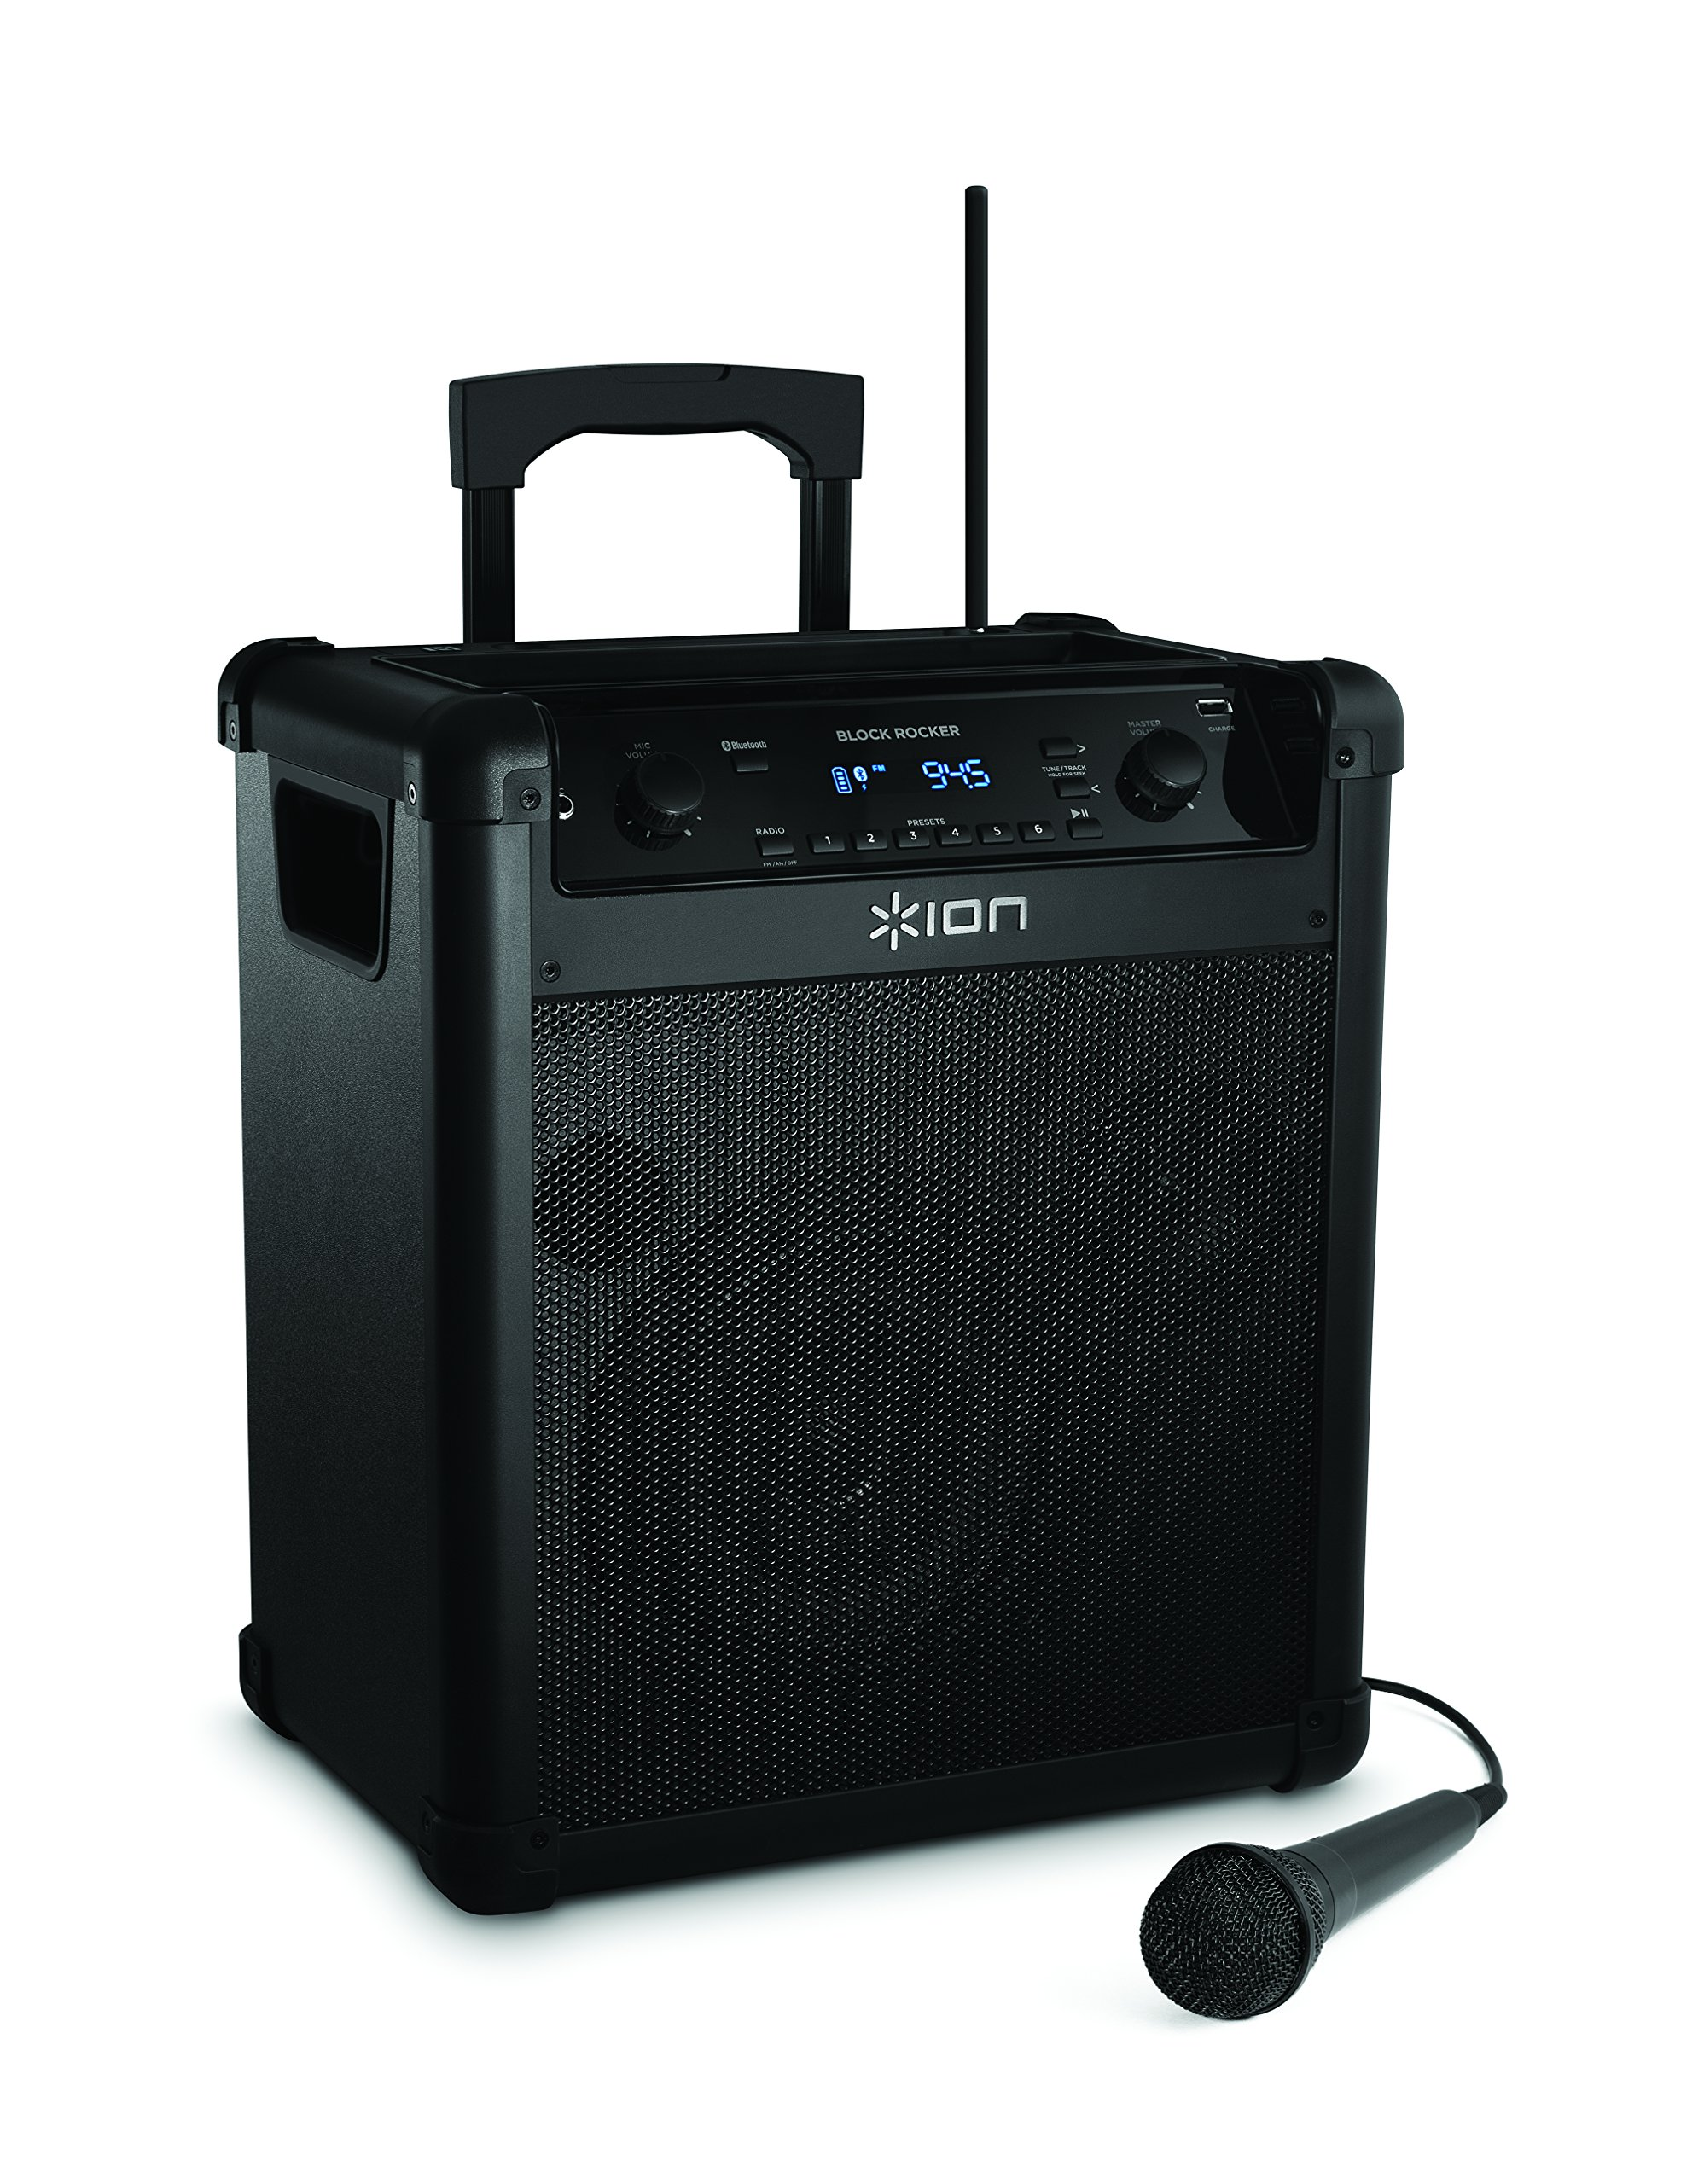 ION Audio Block Rocker (iPA76A) | Portable Bluetooth Speaker with Mic, Radio, and Wheels & Handle for Transport by ION Audio